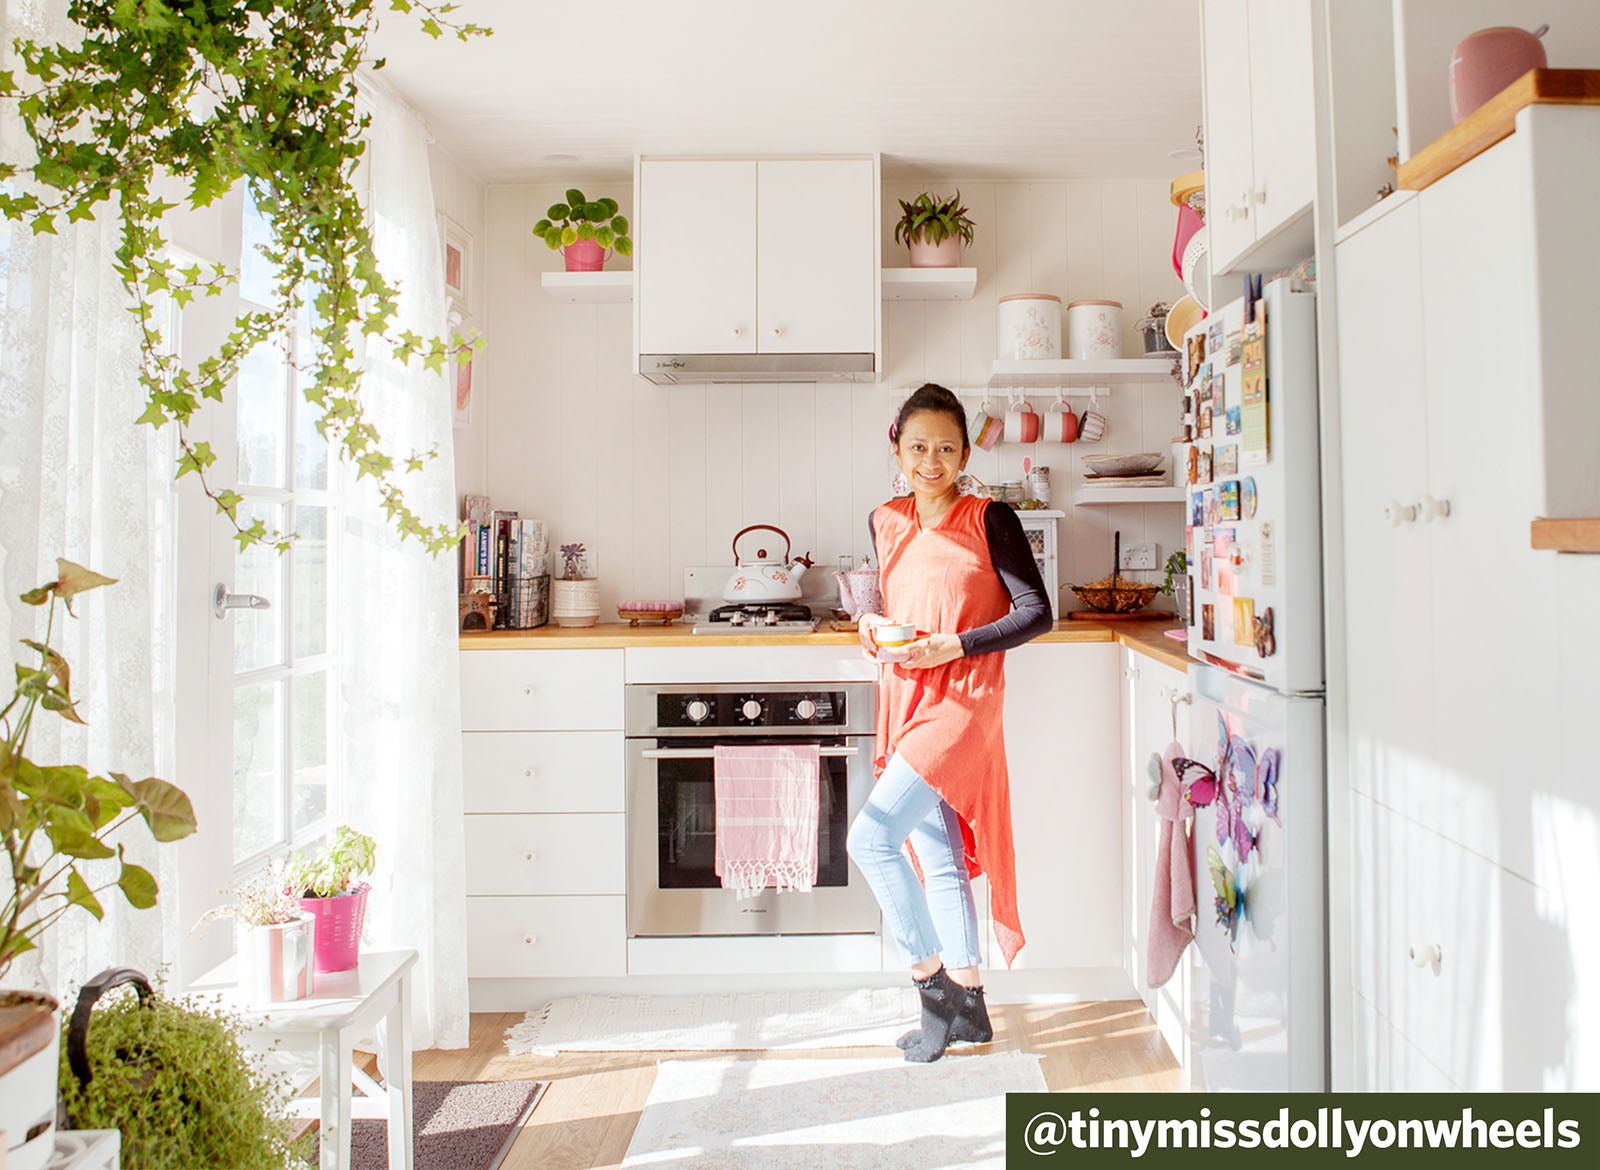 Q&A: Plants in a Tiny House with @tinymissdollyonwheels